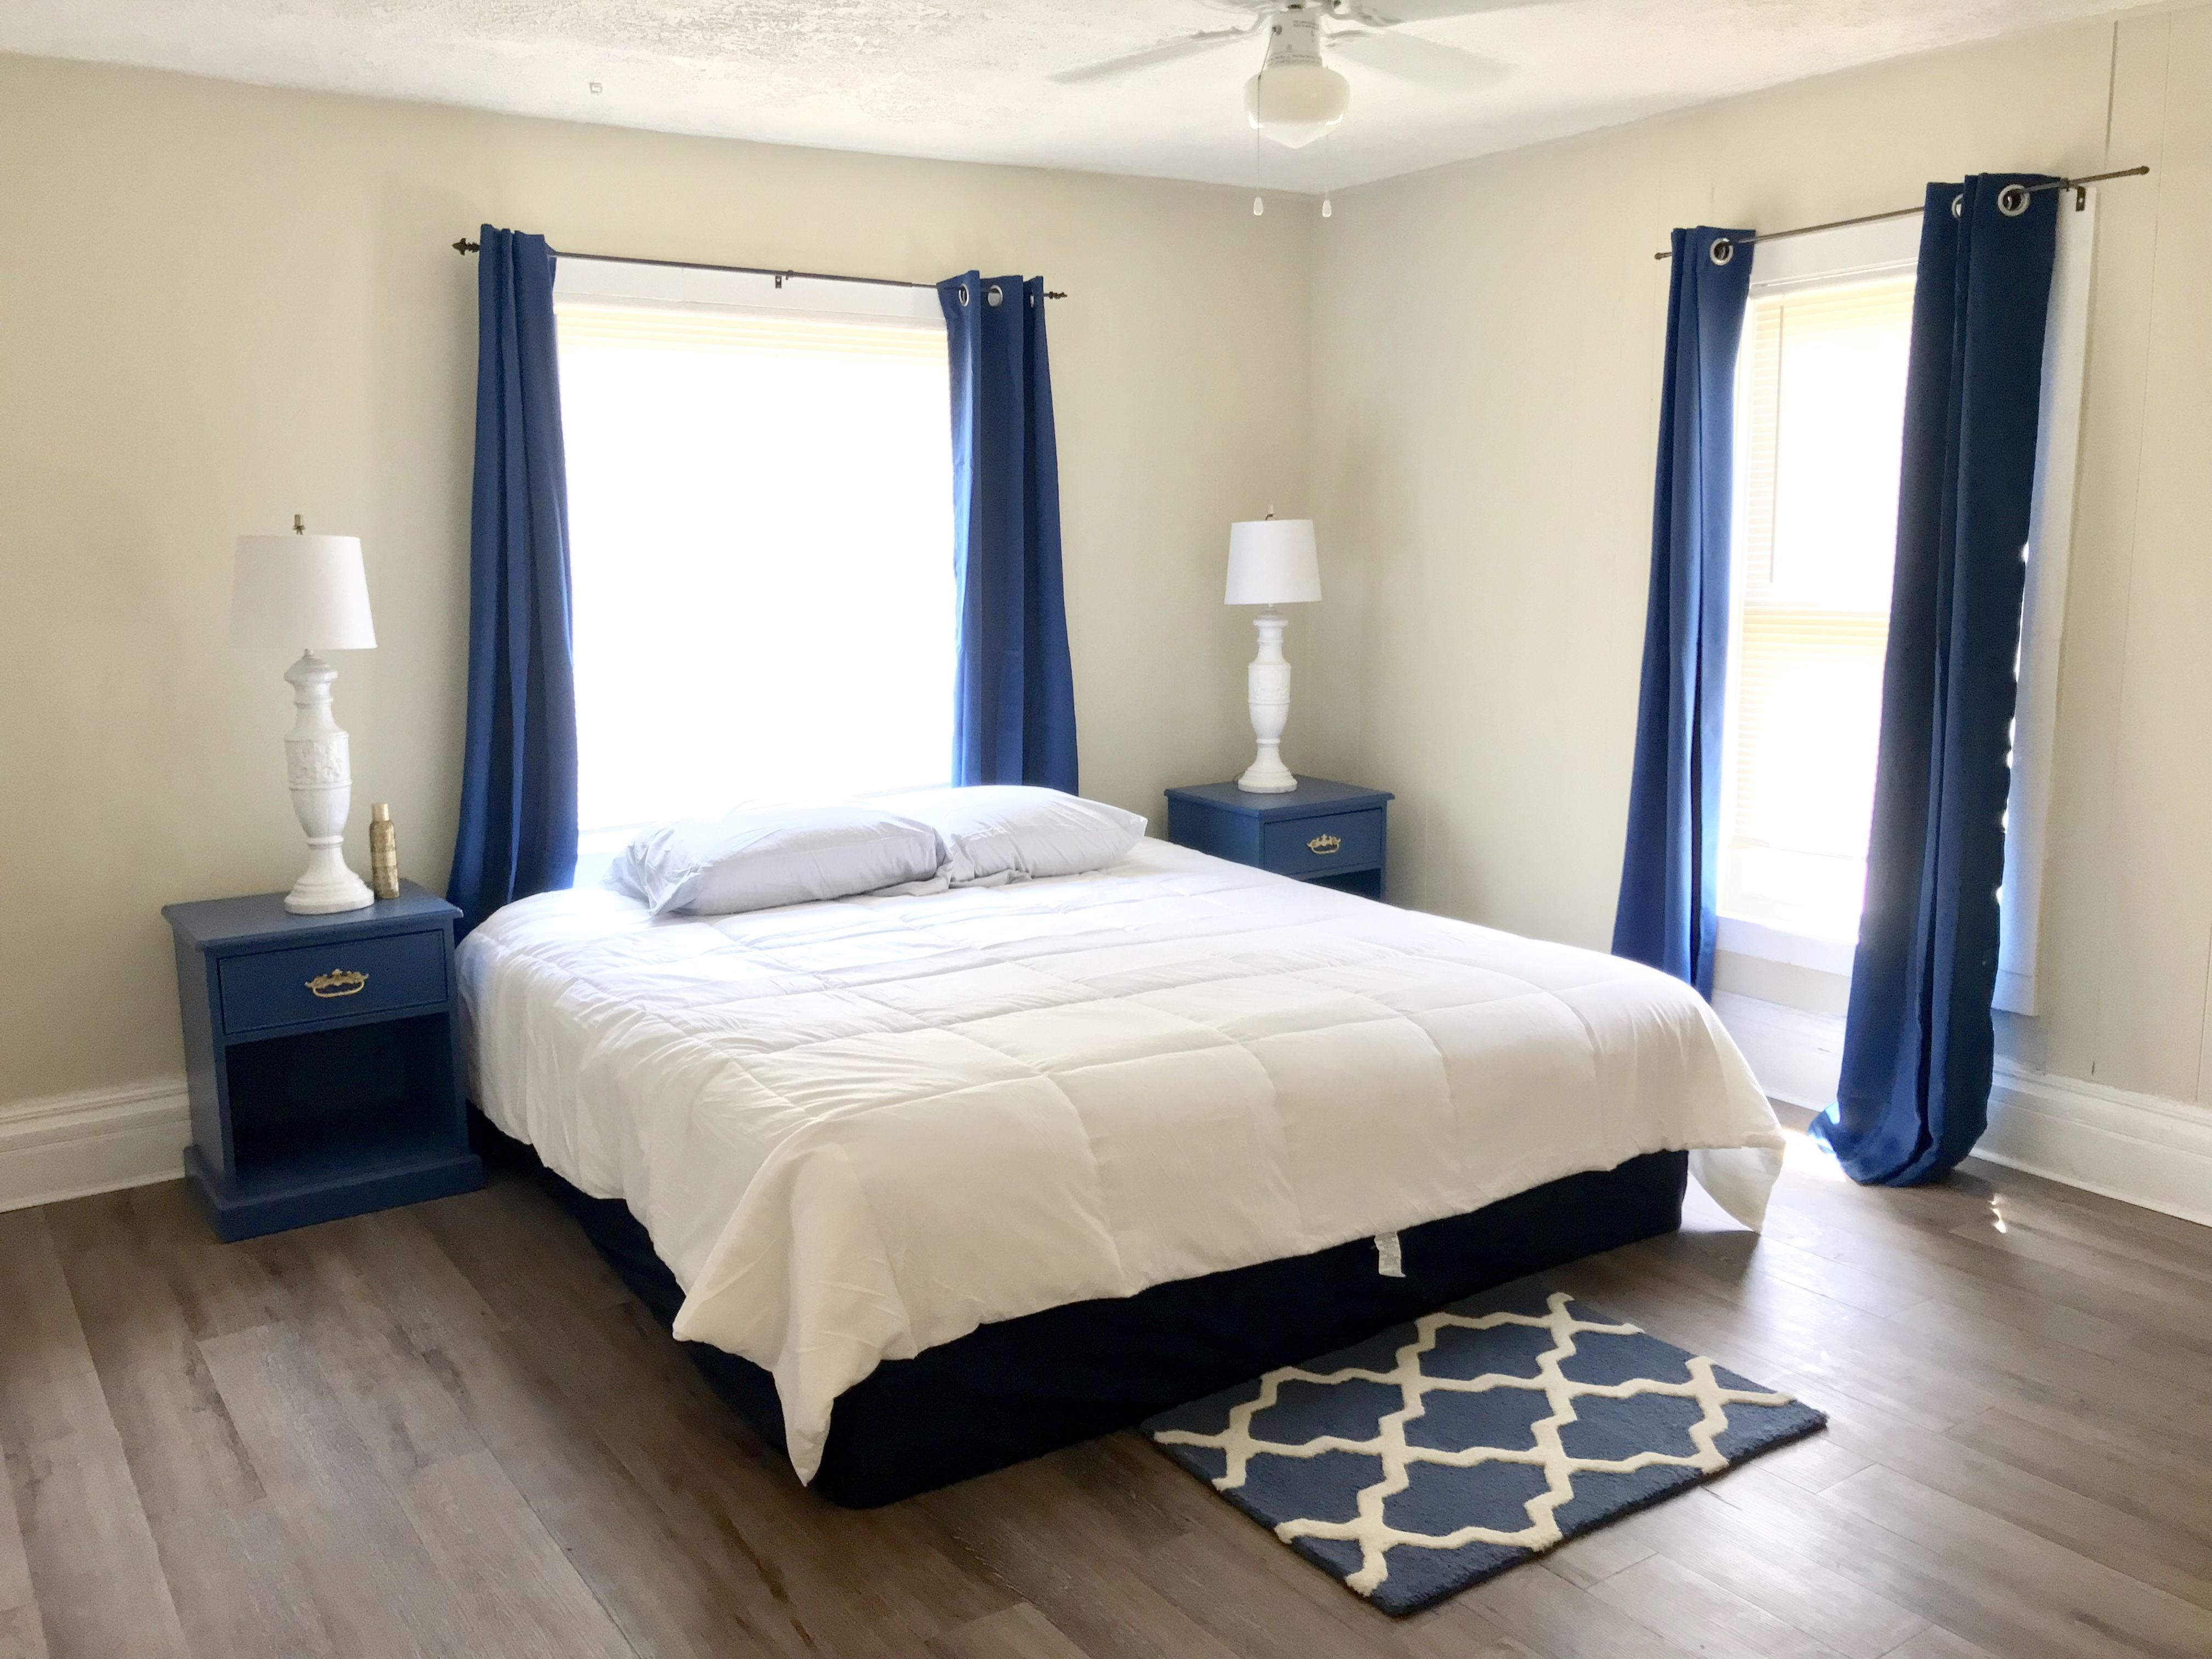 Royal Blue And Gold Bedroom Decor Blue Bedroom Decor Blue And